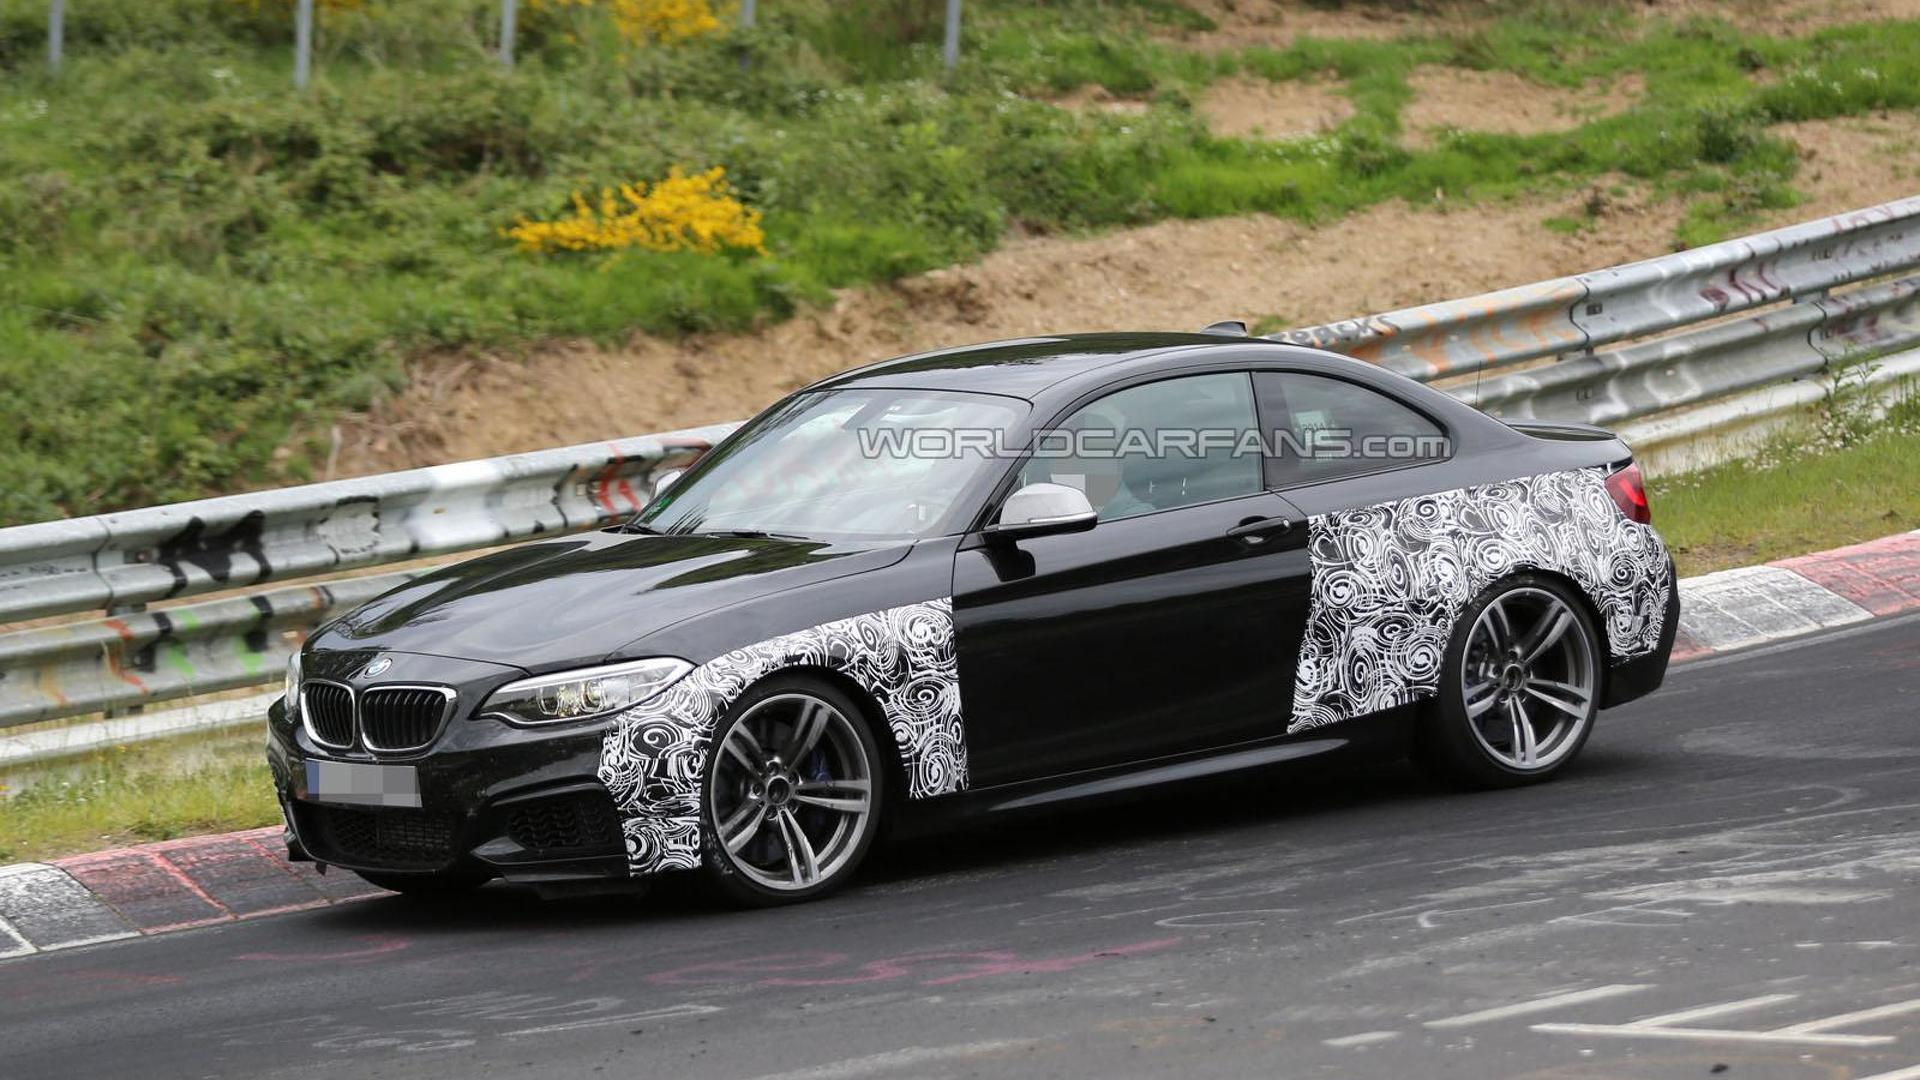 BMW M2 production starting November 2015 - report